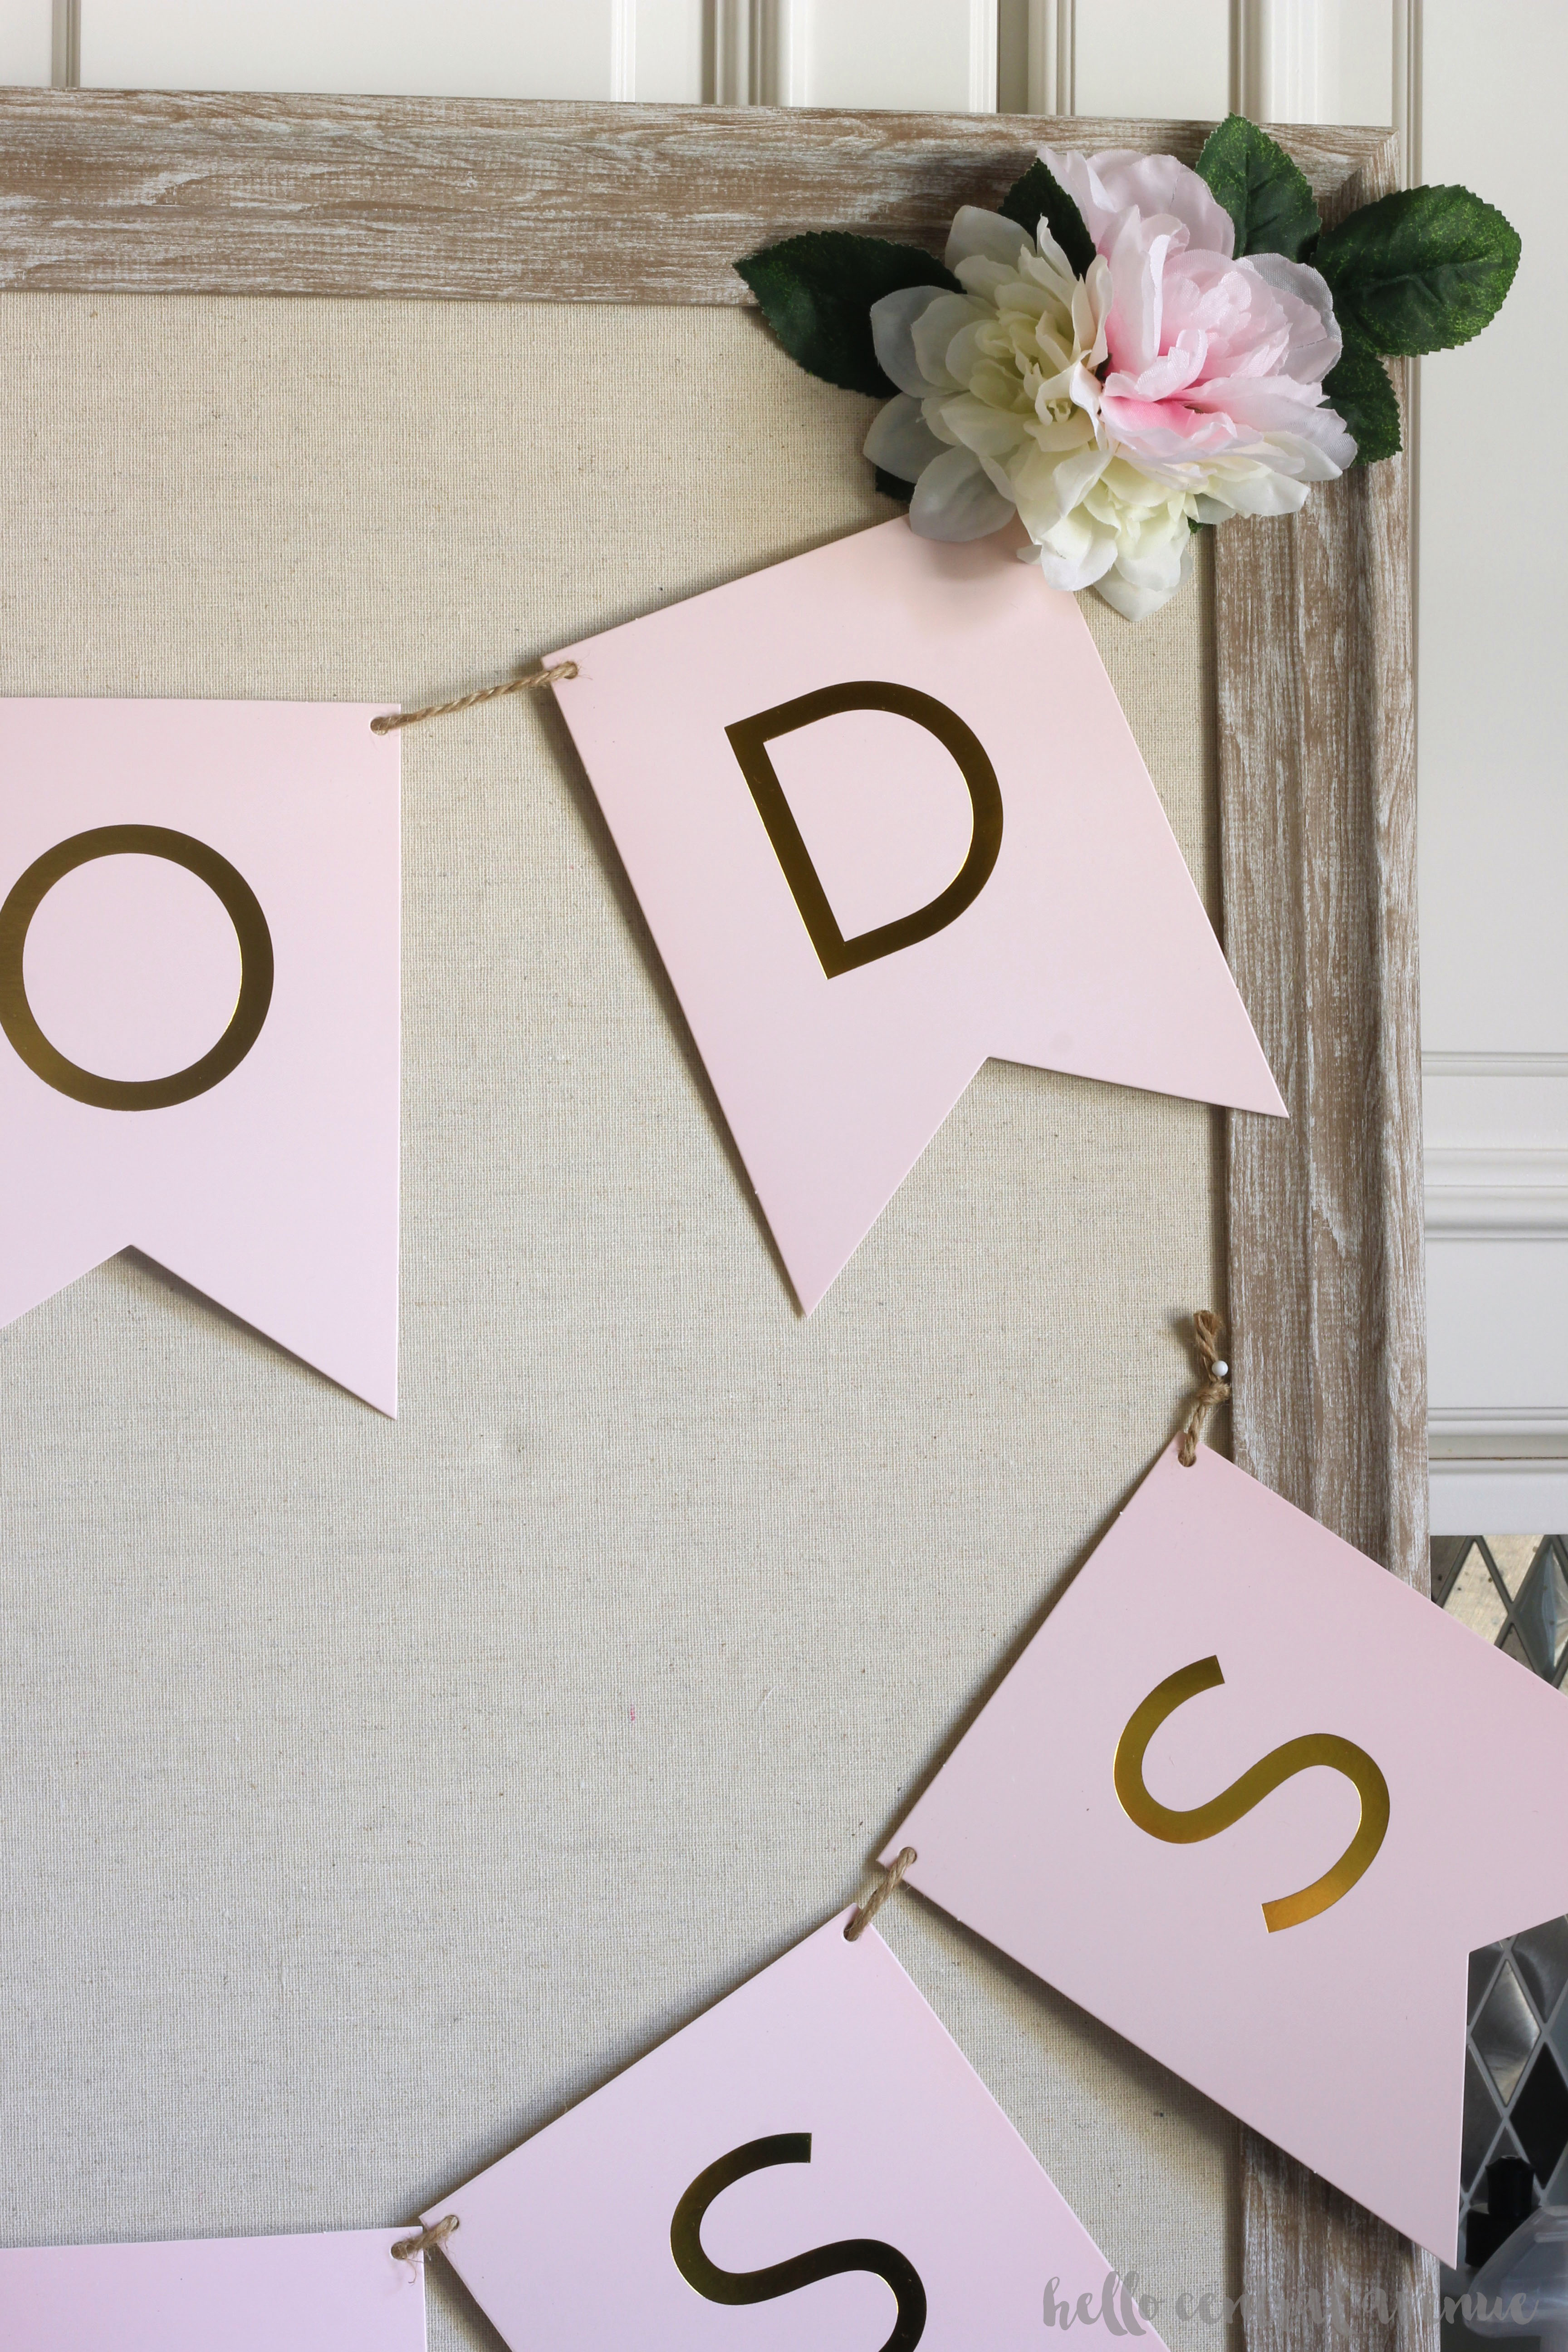 Here is an easy, inexpensive, and beautiful DIY first communion sign. You can easily add some gorgeous decor to your party by bringing in pink and gold to the traditional white. The dollar store flowers add some dimension to this already sweet little piece of party decor.